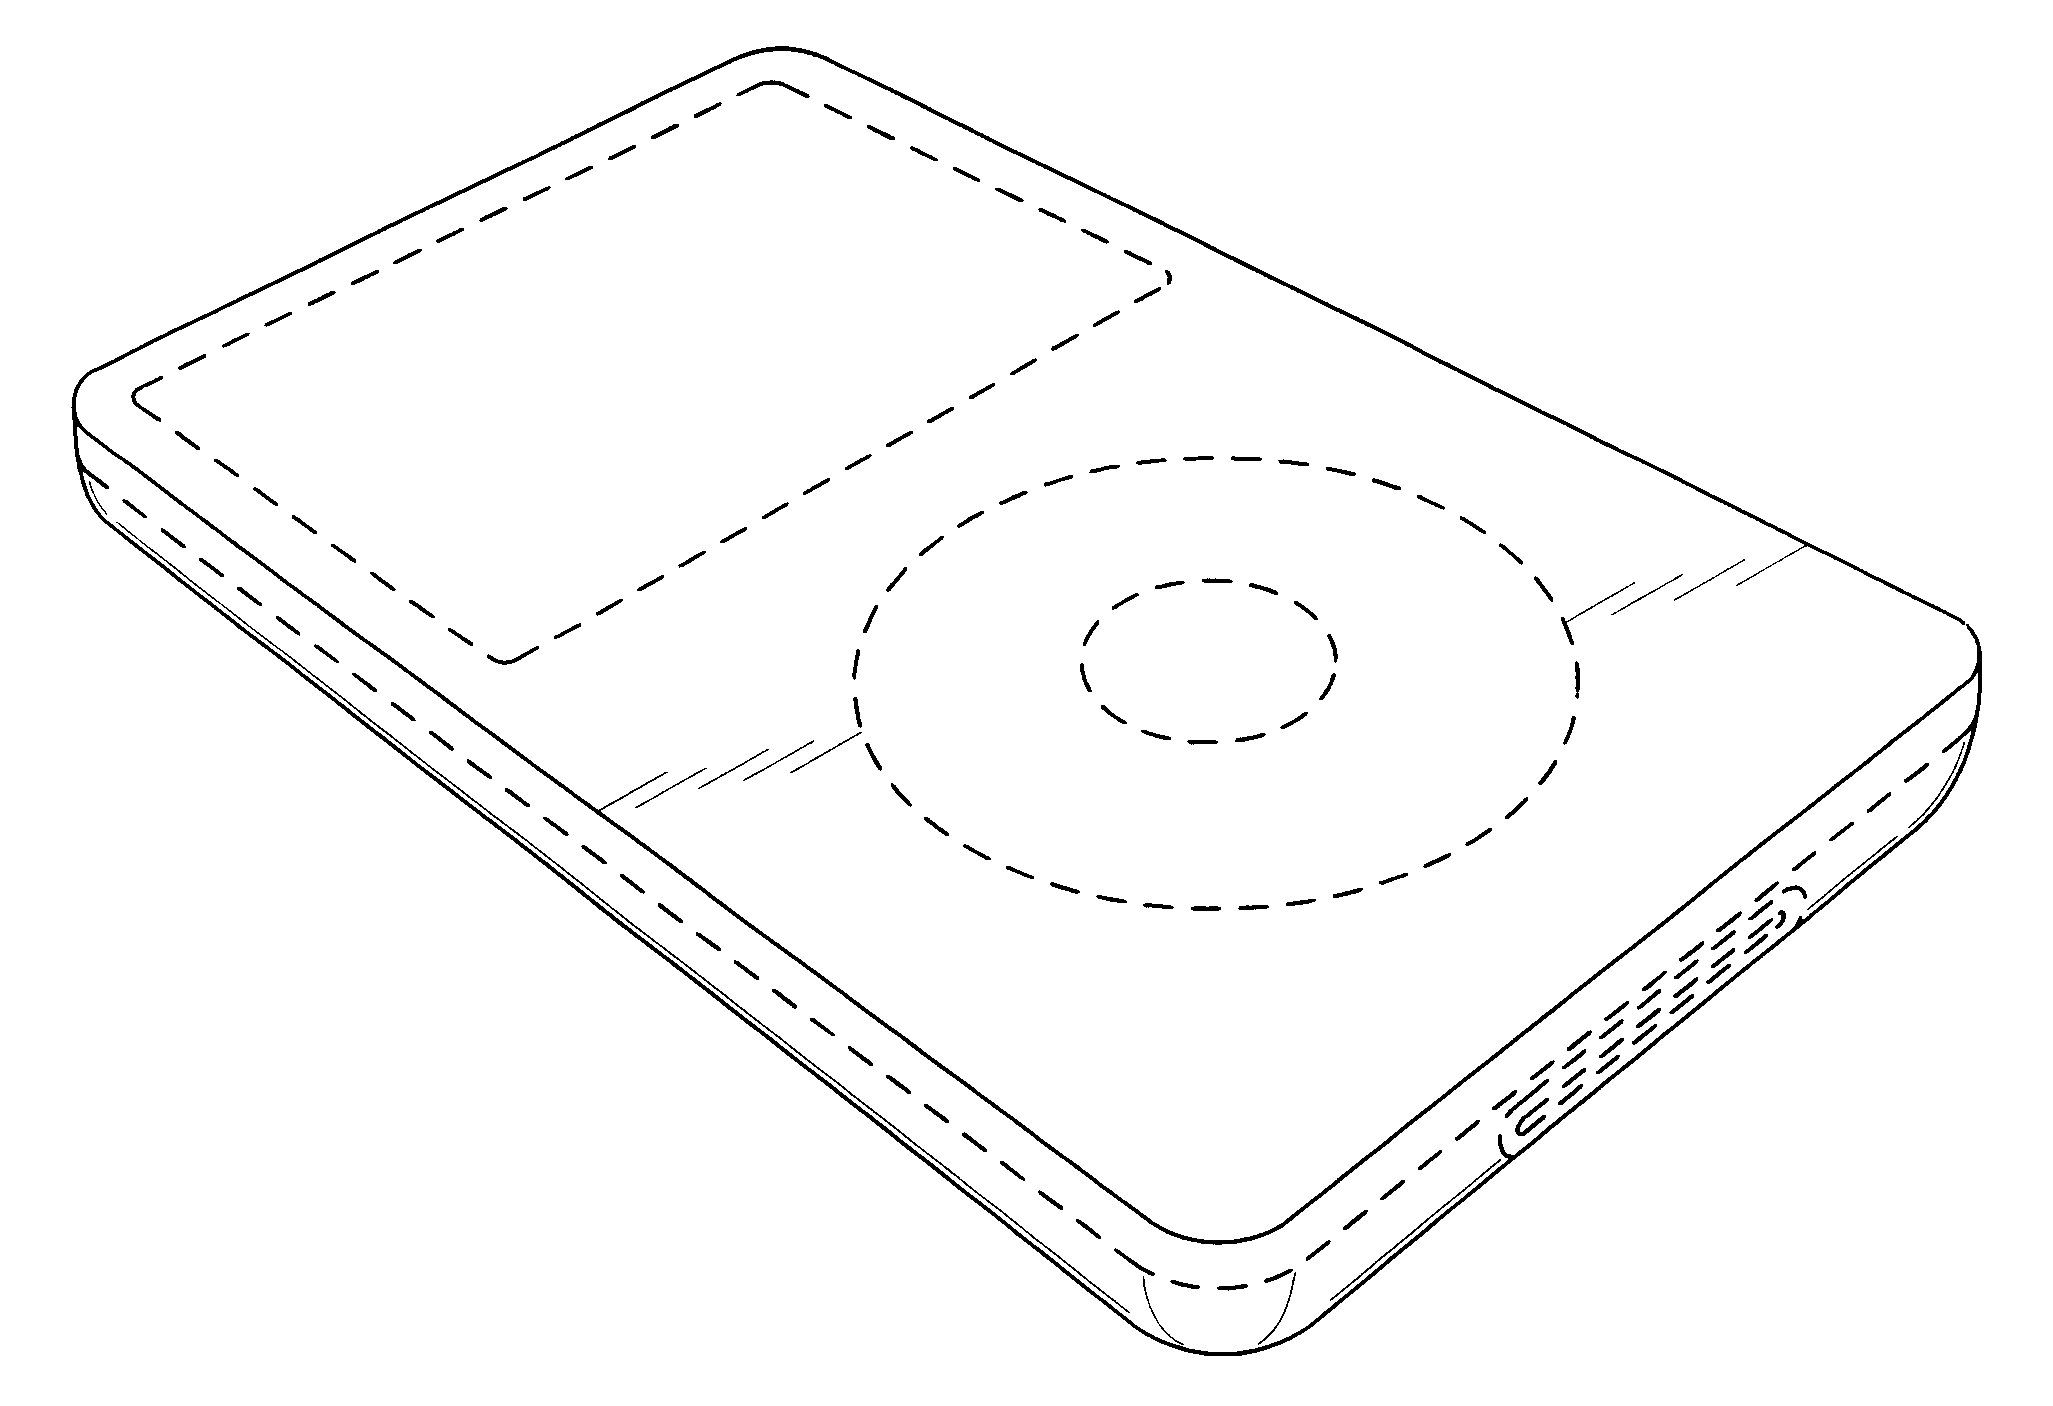 Apple  patent by Steve Jobs from 2007 for media device - USD548747